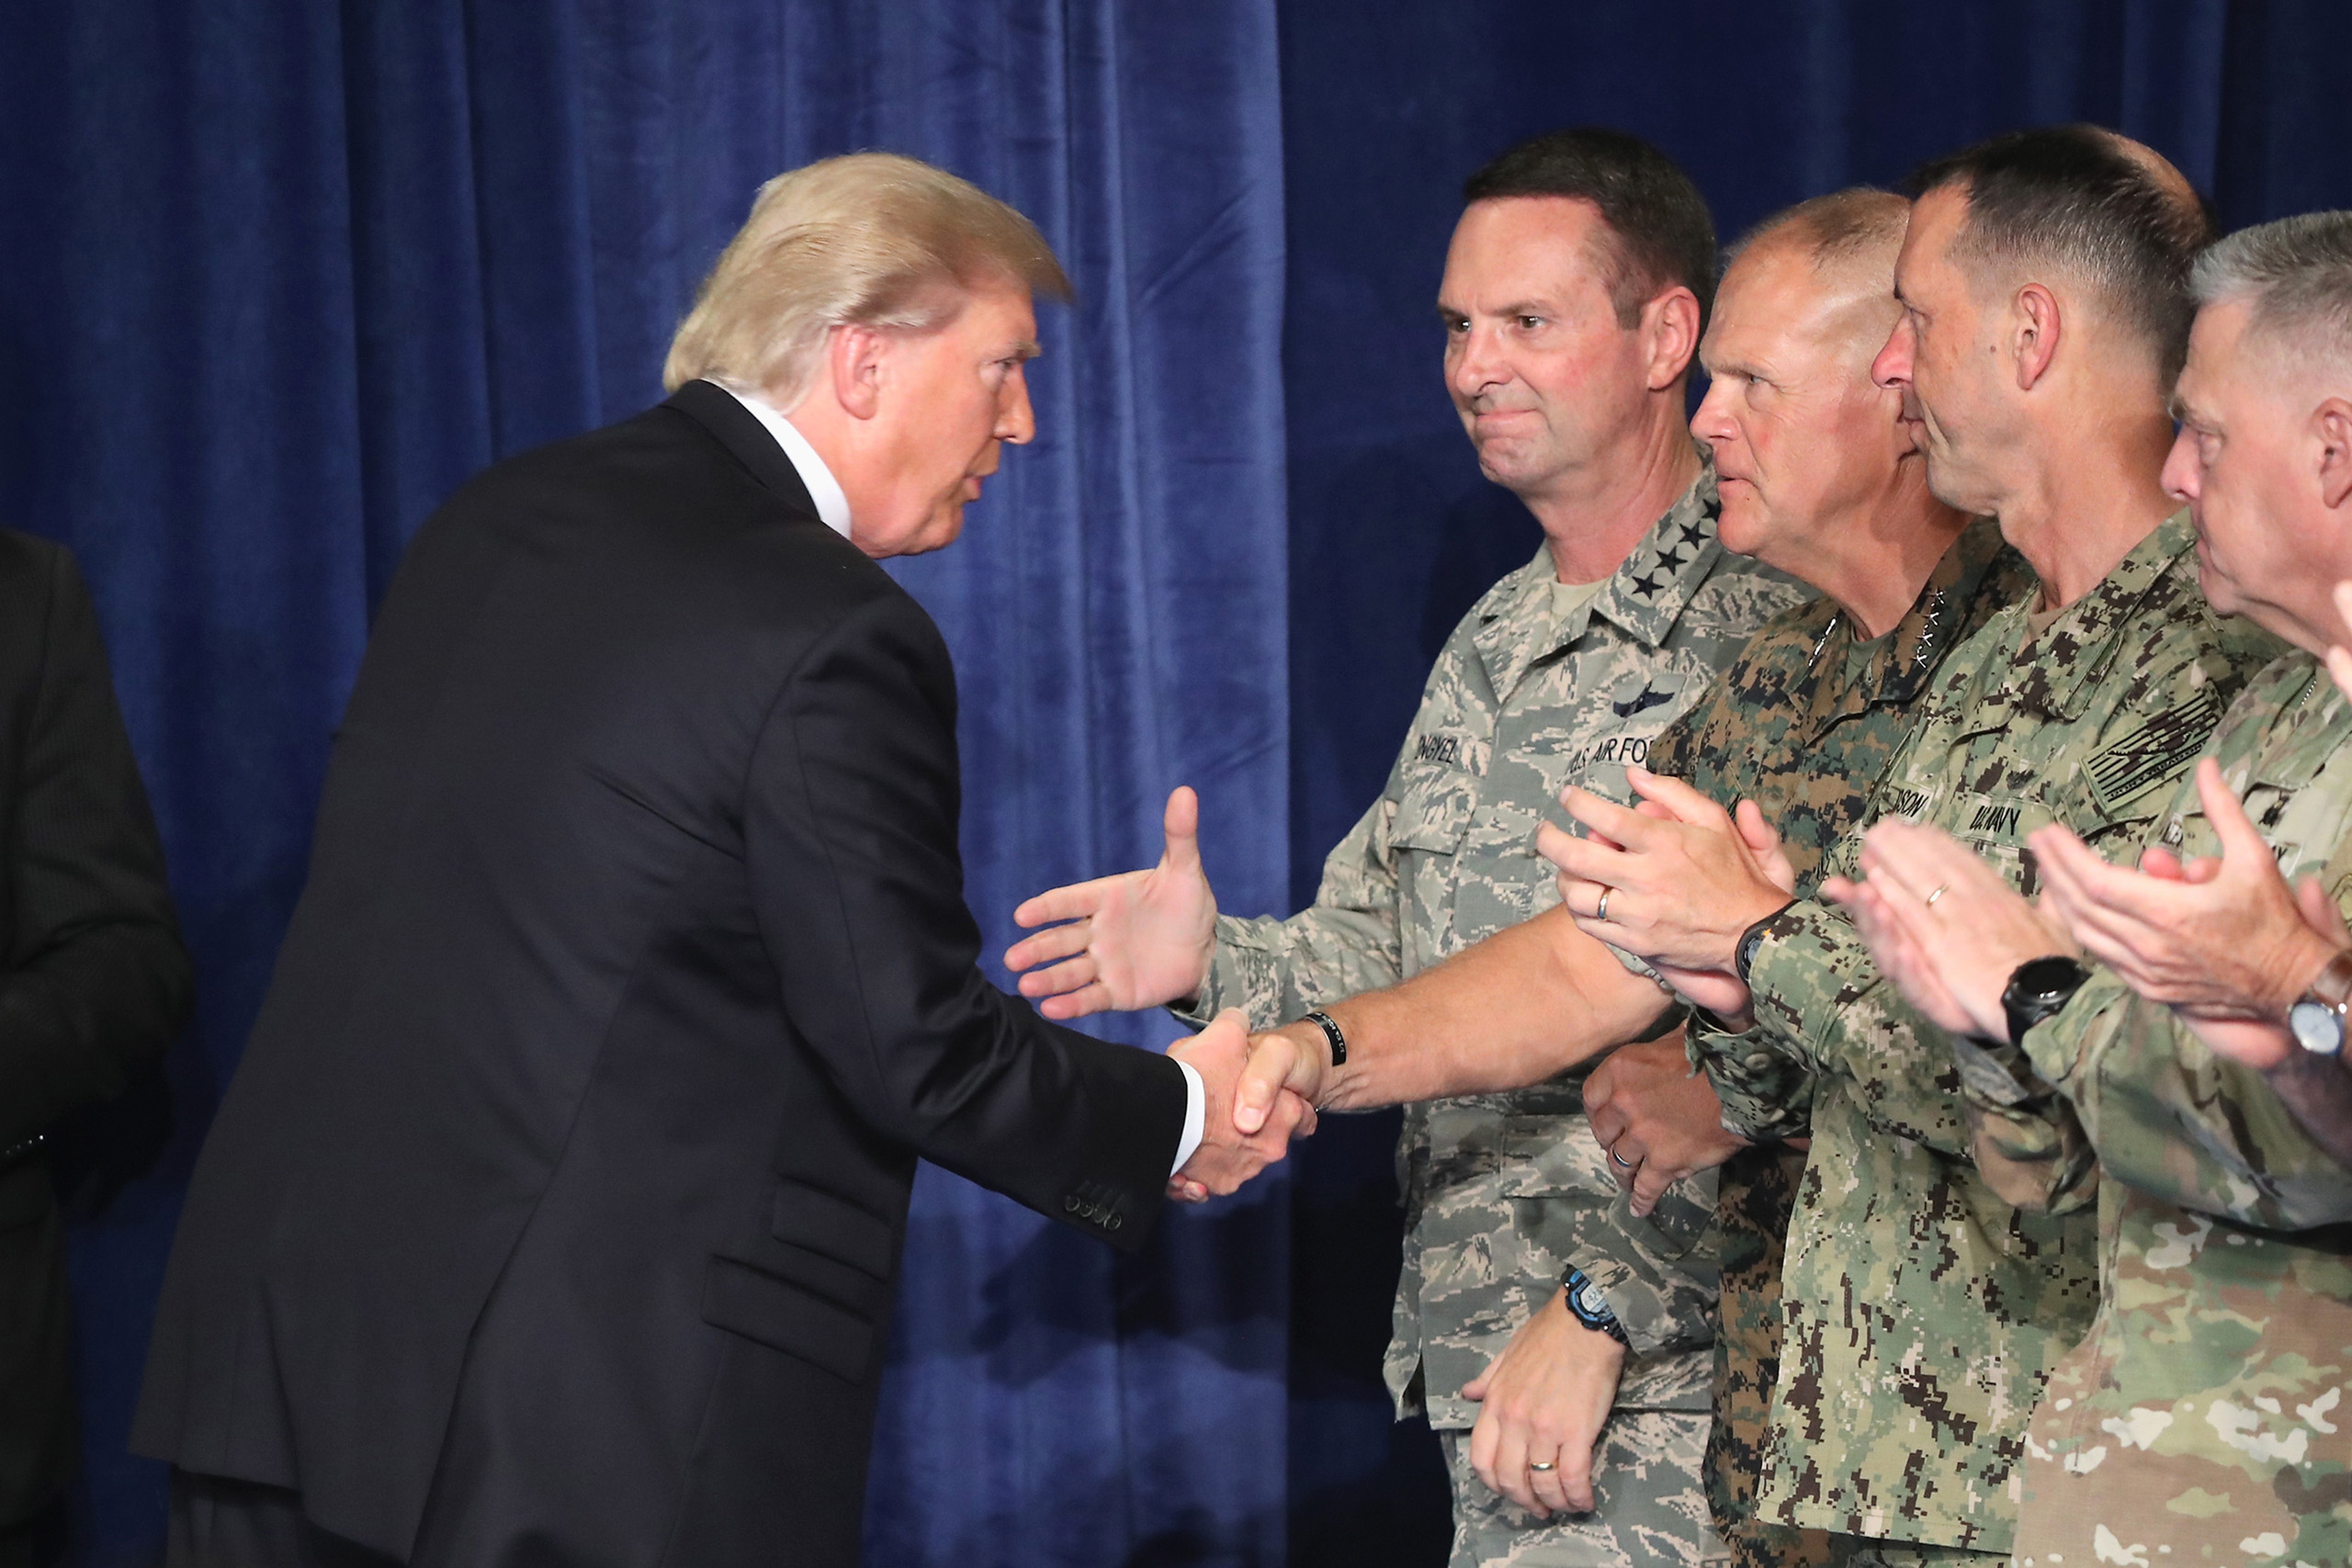 President Donald Trump greets military leaders before his speech on Afghanistan at the Fort Myer military base in Arlington, Virginia, on Aug. 21, 2017.